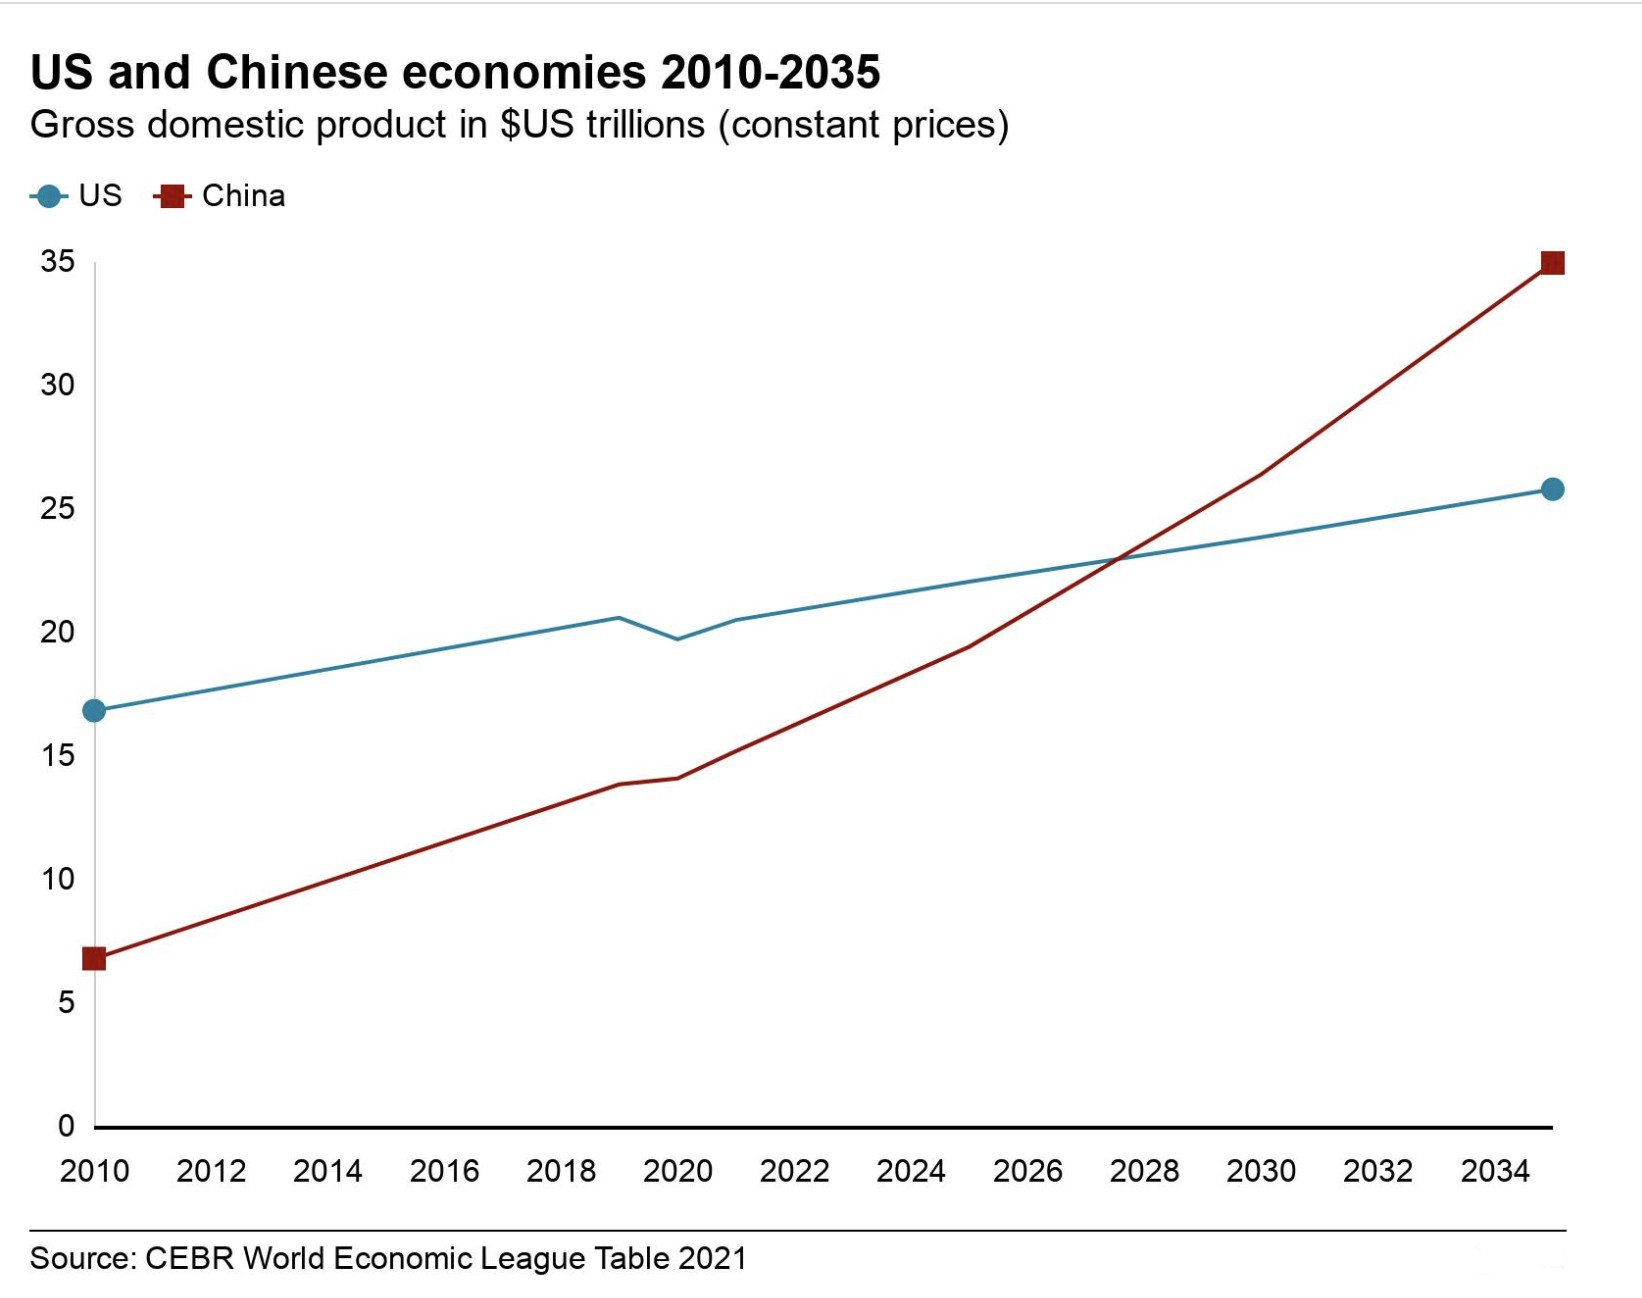 China's economy forecast to overtake USA in 2028